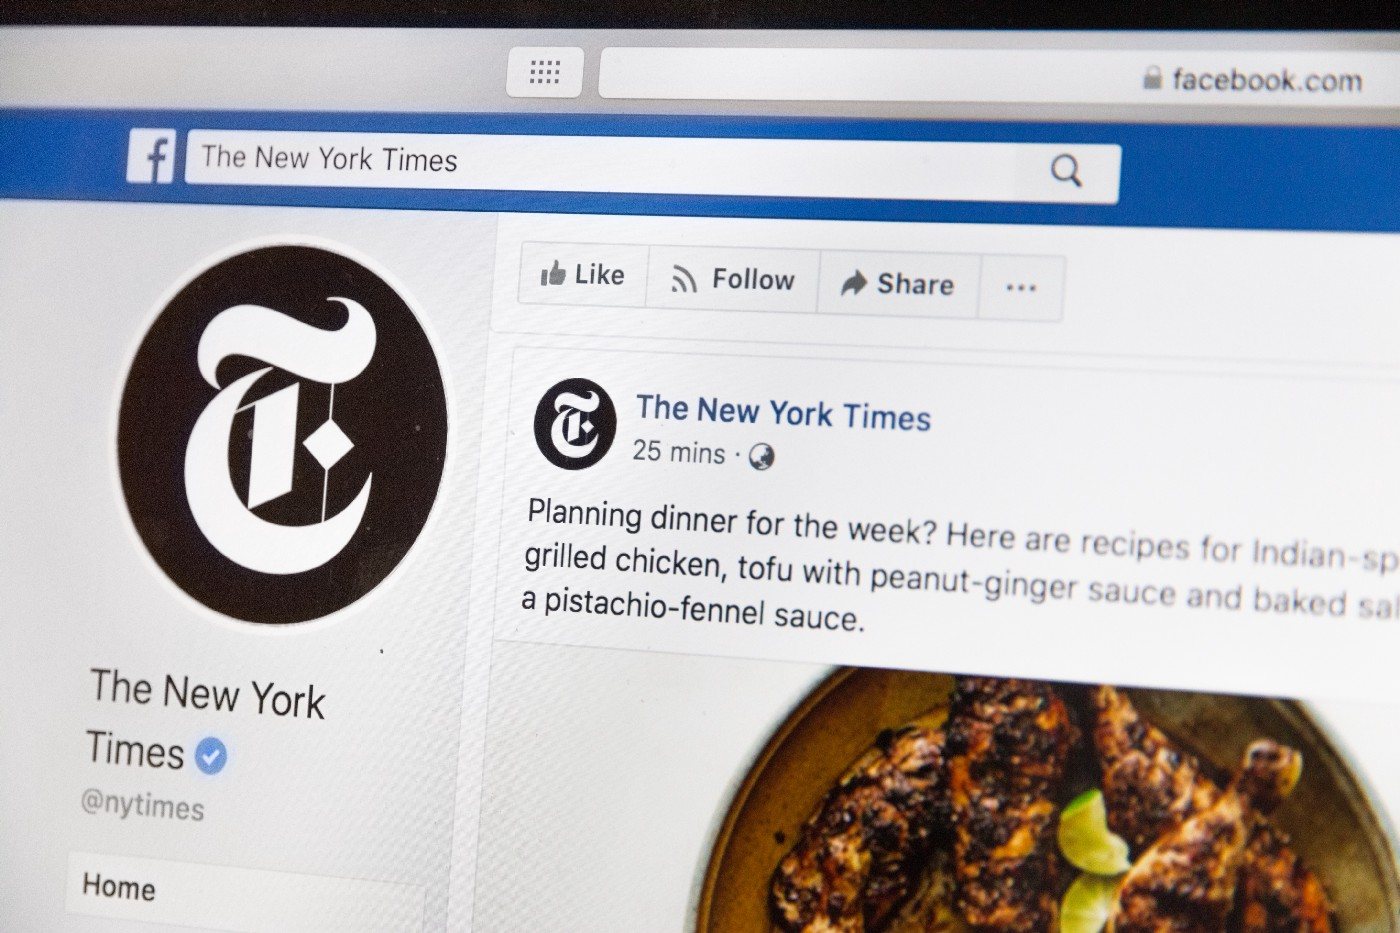 Laptop open to New York Times page on Facebook.